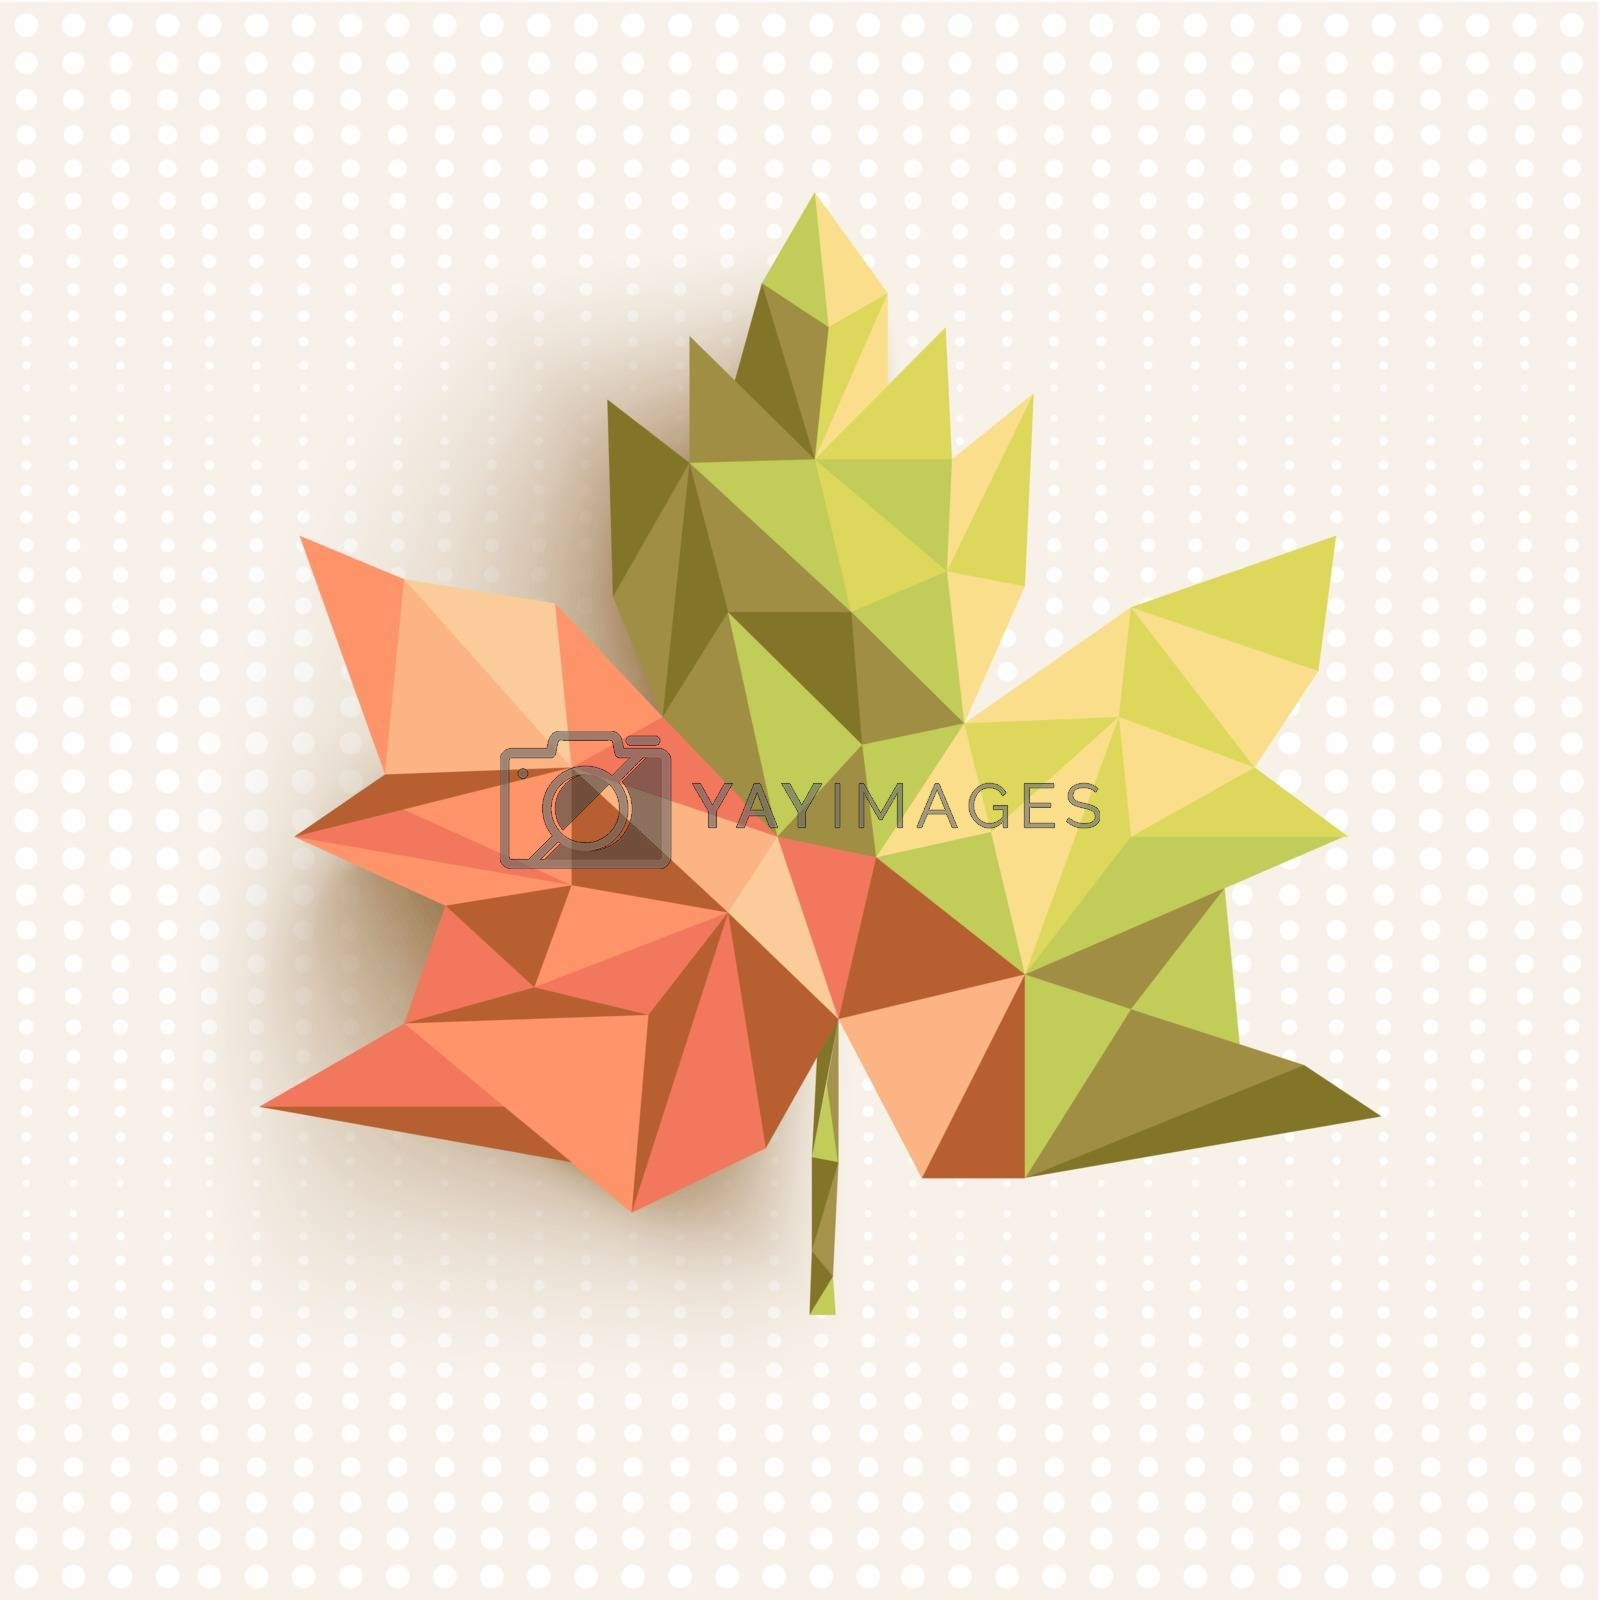 Trendy 3d geometric fall leaf composition illustration. EPS10 vector file organized in layers for easy editing.